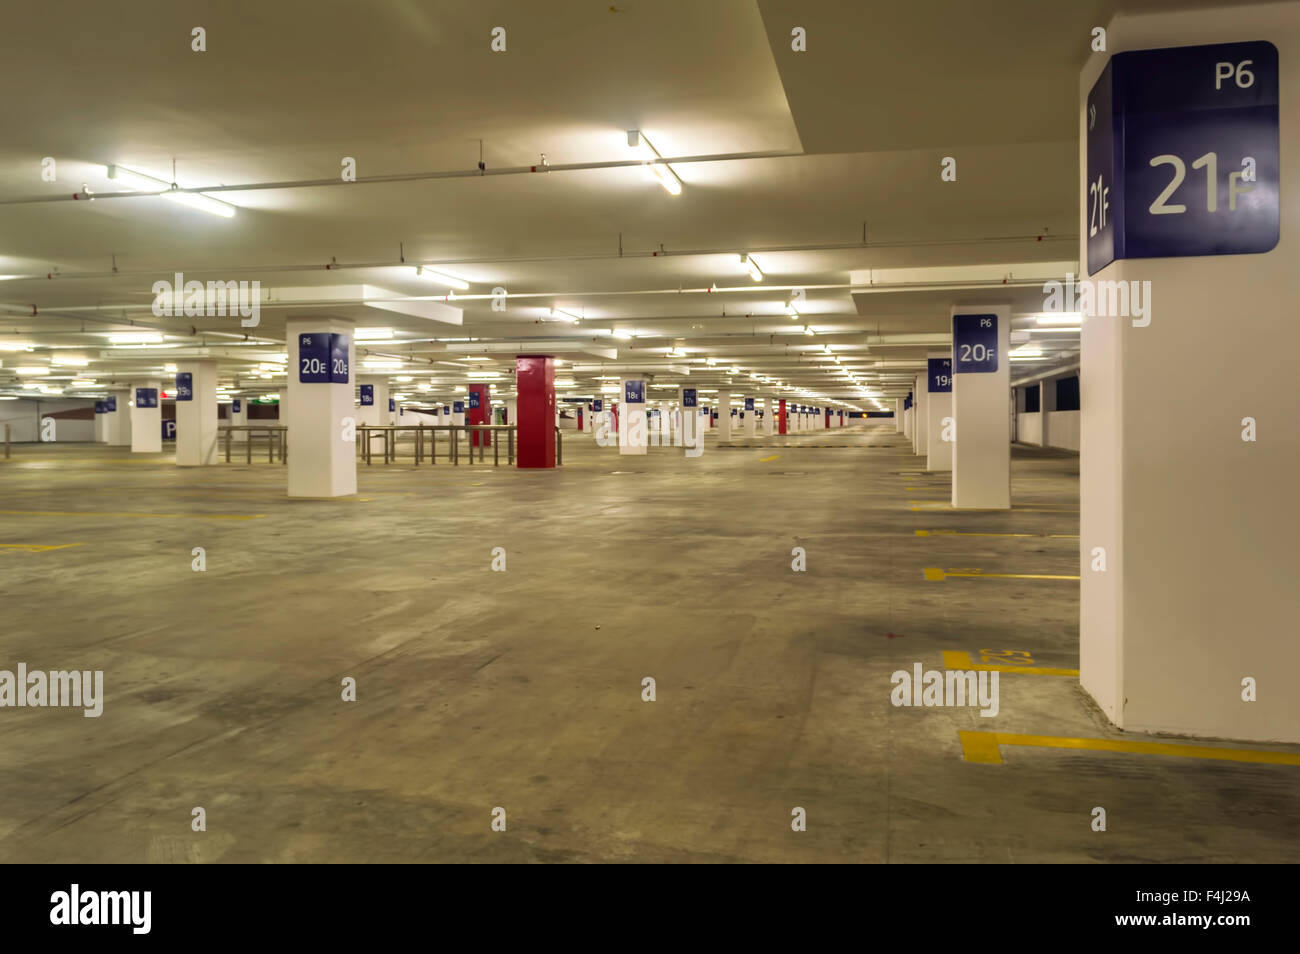 Empty Parking Lot Inside Commercial Building Stock Photo